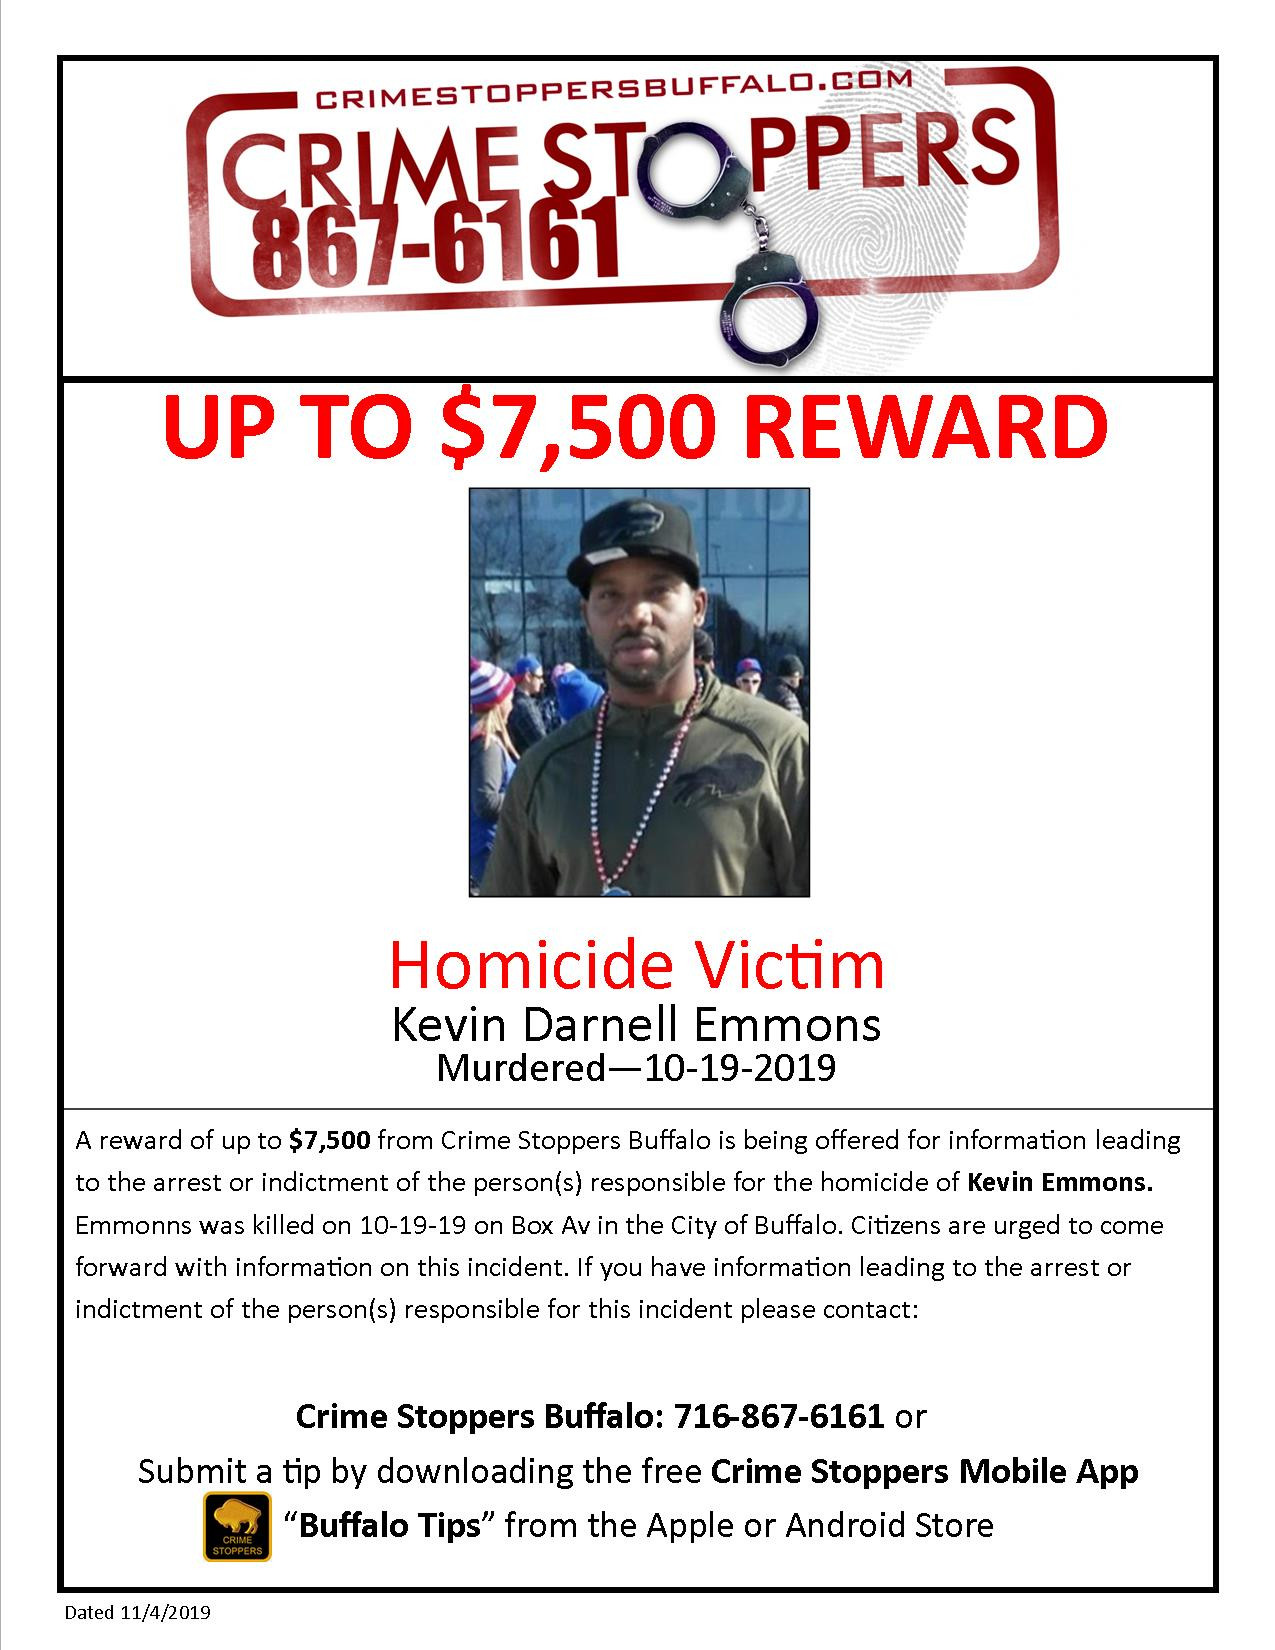 CrimeStoppers_HomicideVictim_KevinEmmons (2)